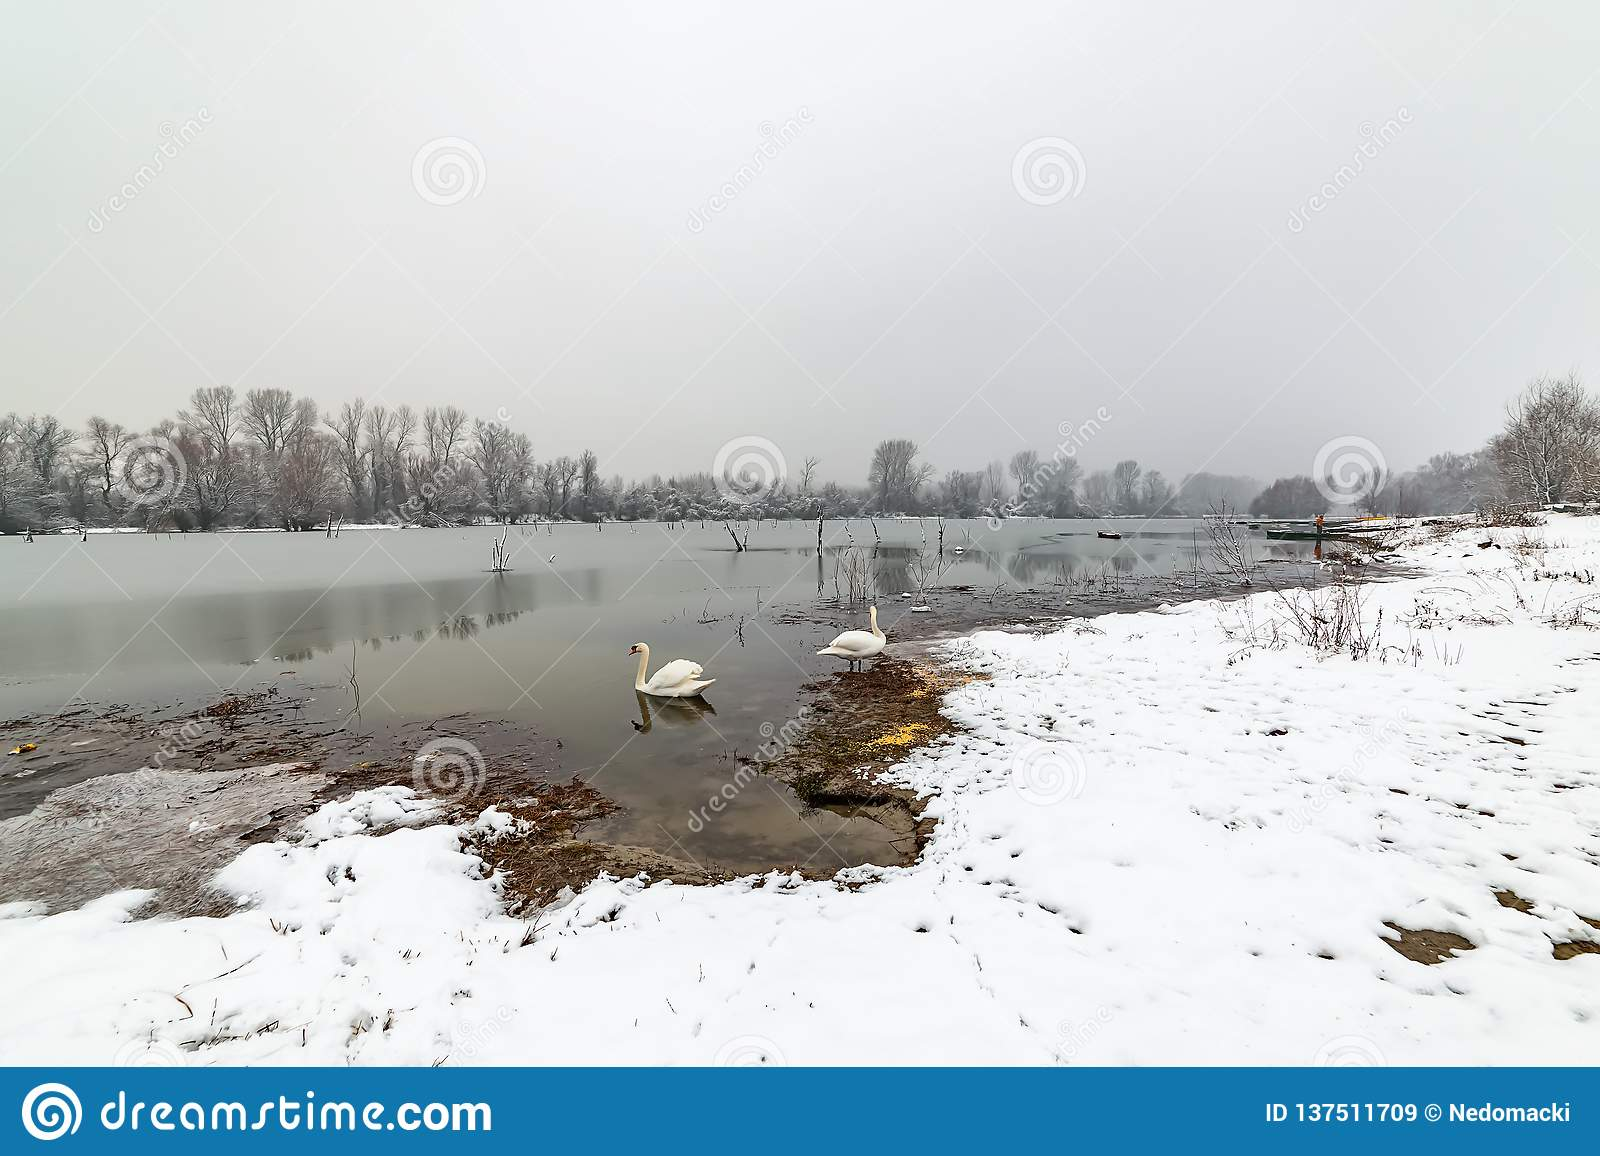 Danube island Šodroš near Novi Sad, Serbia. Colorful landscape with swans and beautiful frozen river.